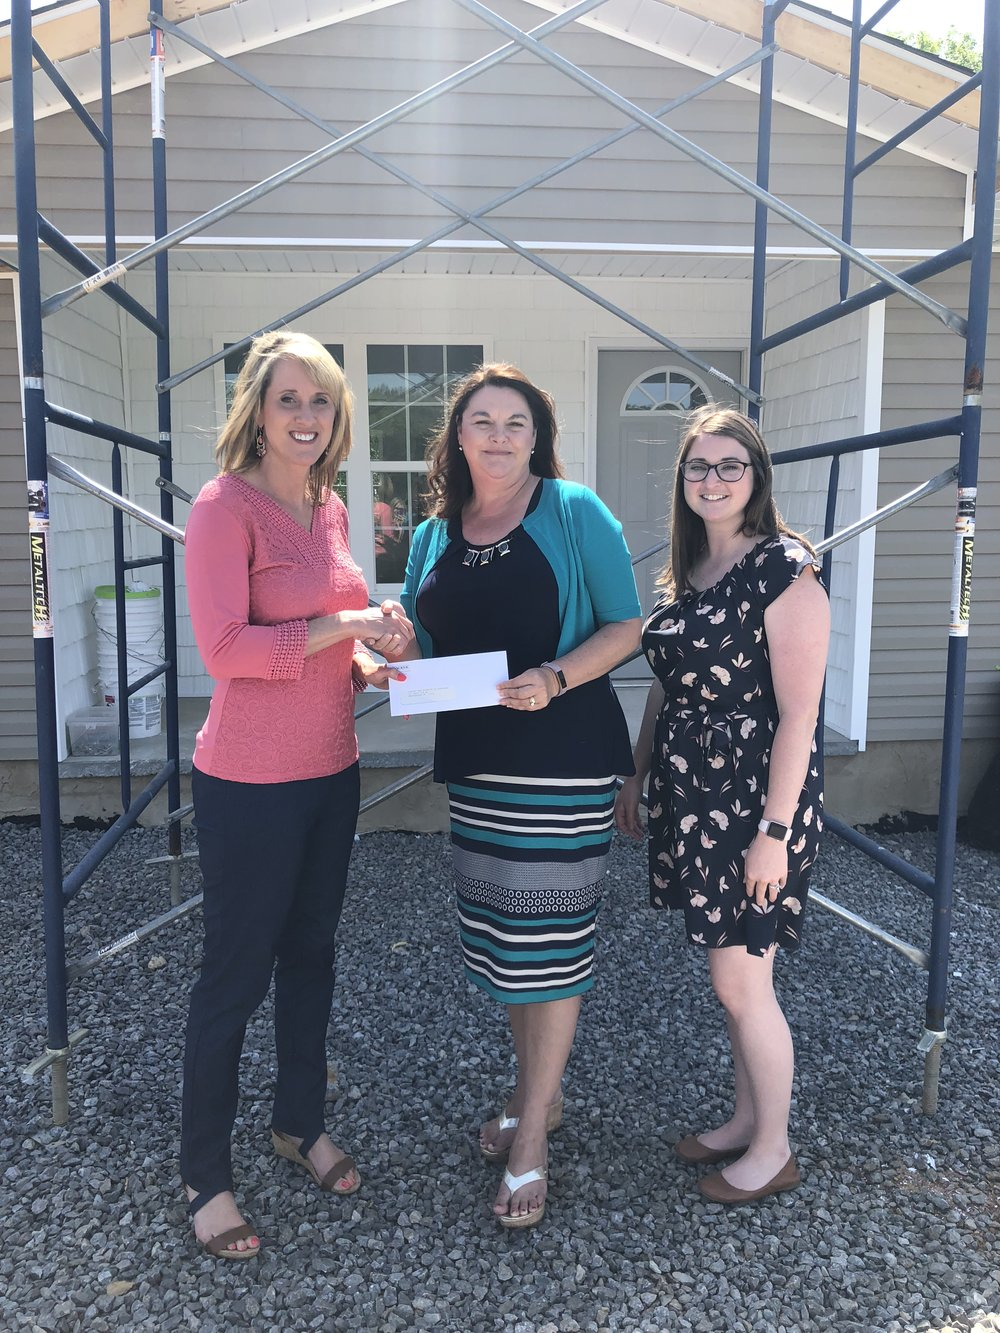 Tammy K. Johnson and Natalie McNair, Habitat for Humanity, accepted a check from Lisa Mantooth (Center), WACKER representative.